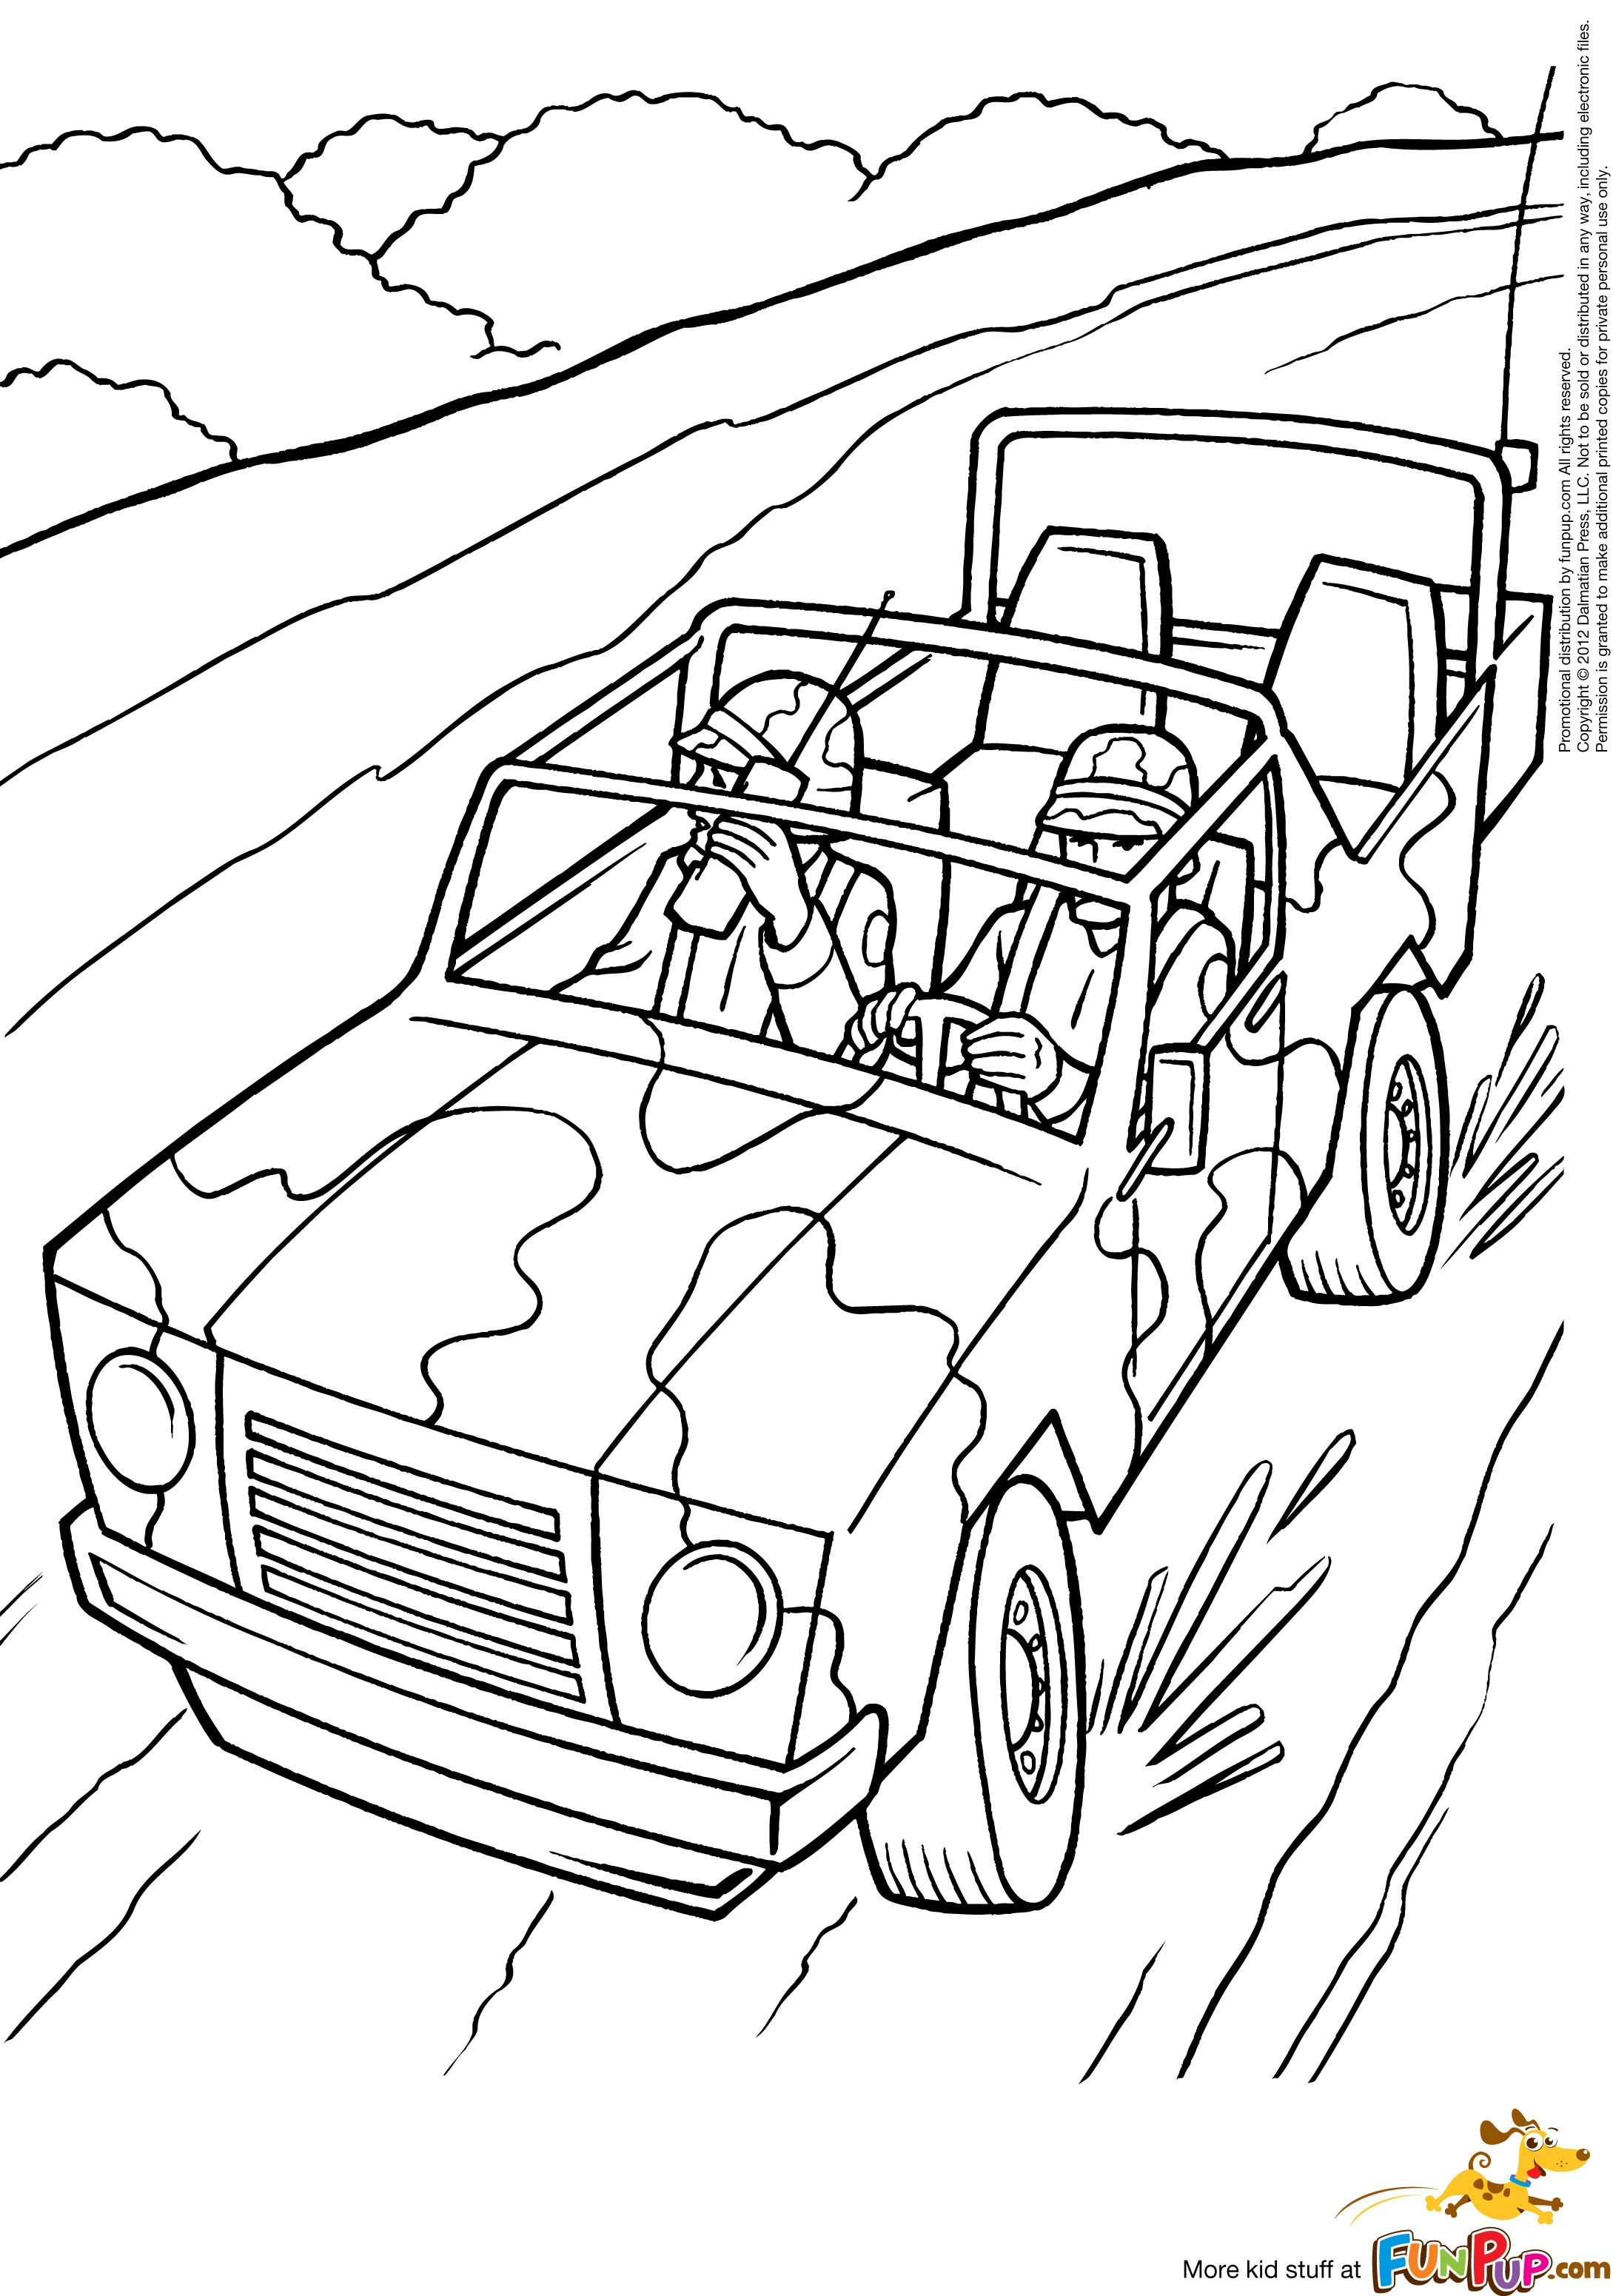 Jeep coloring pages to download